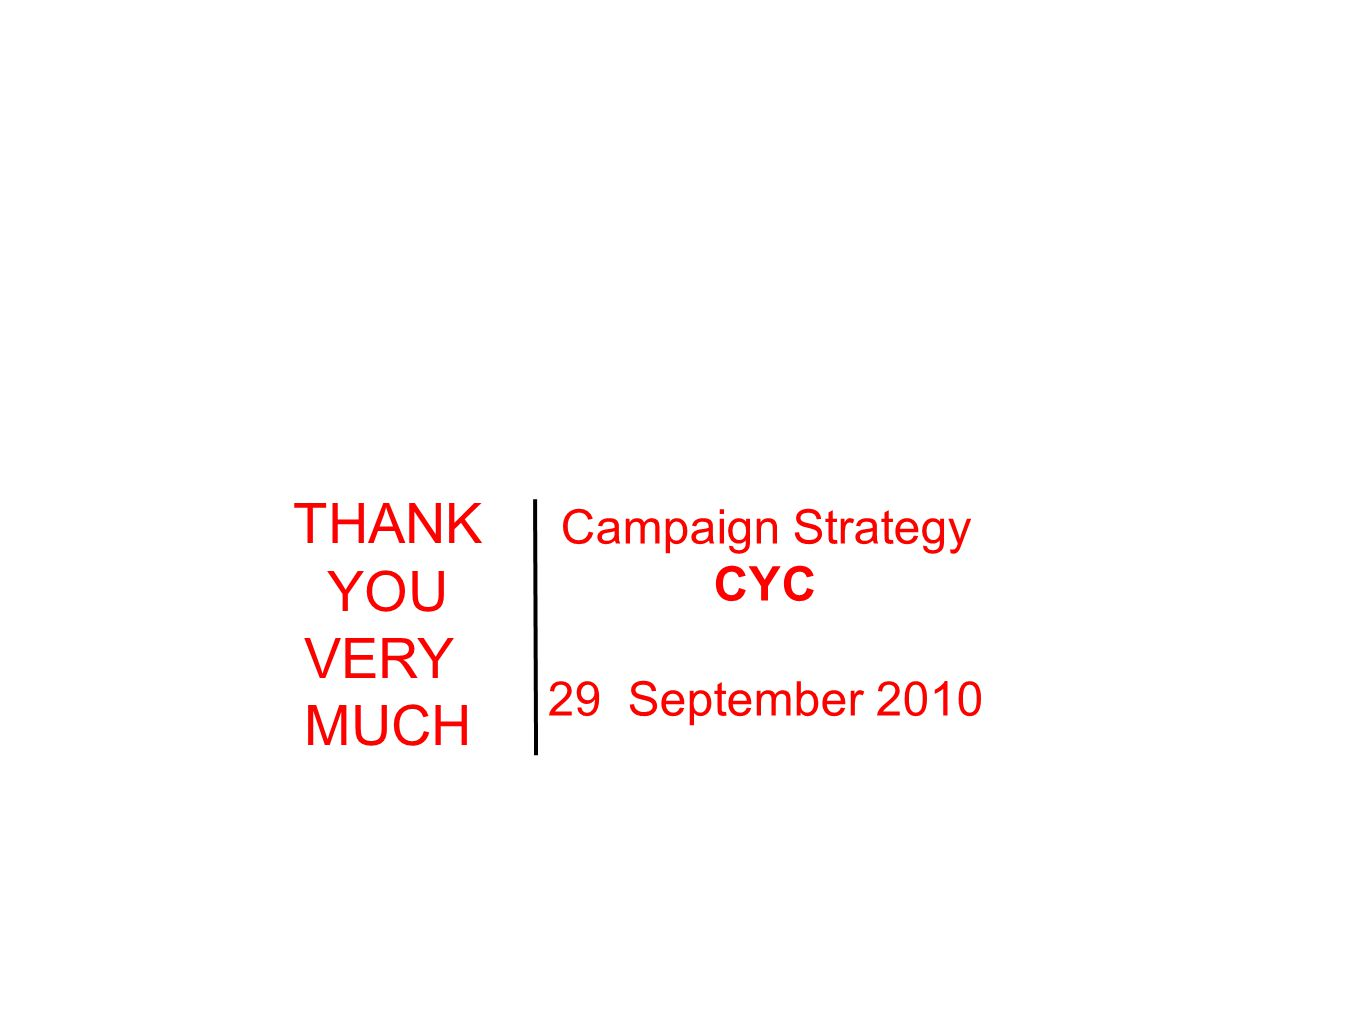 THANK YOU VERY MUCH Campaign Strategy CYC 29 September 2010